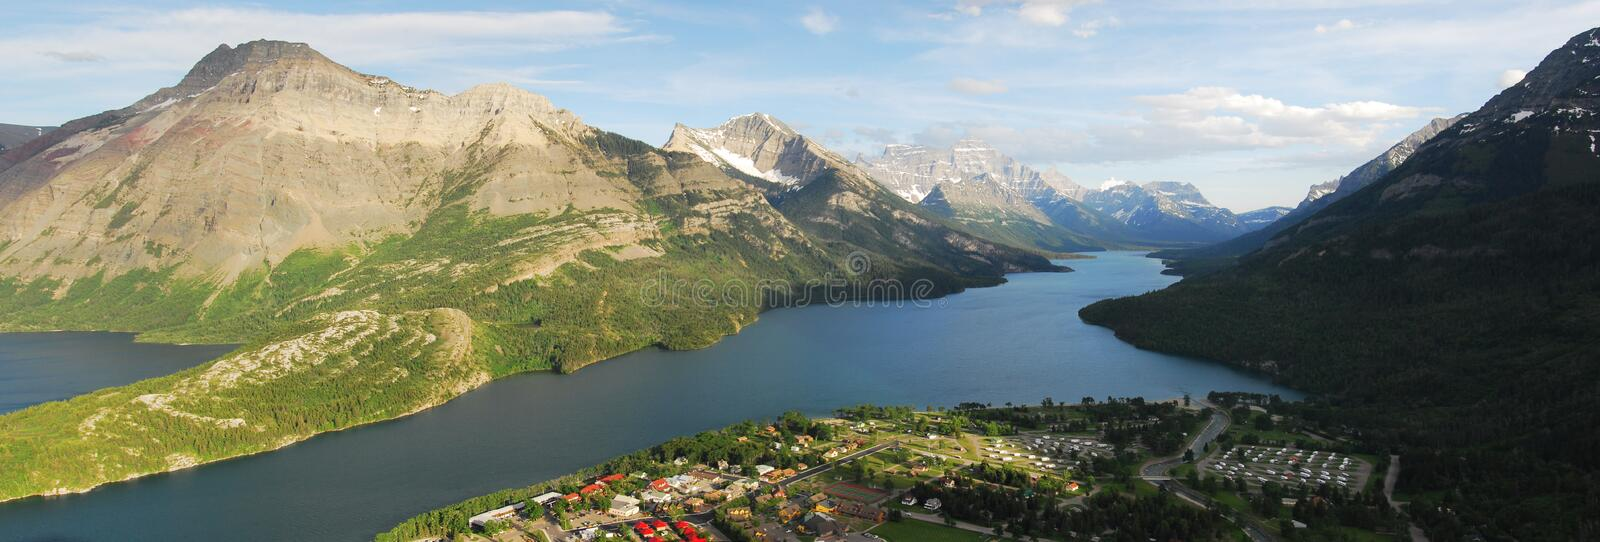 Waterton lakes national park stock images